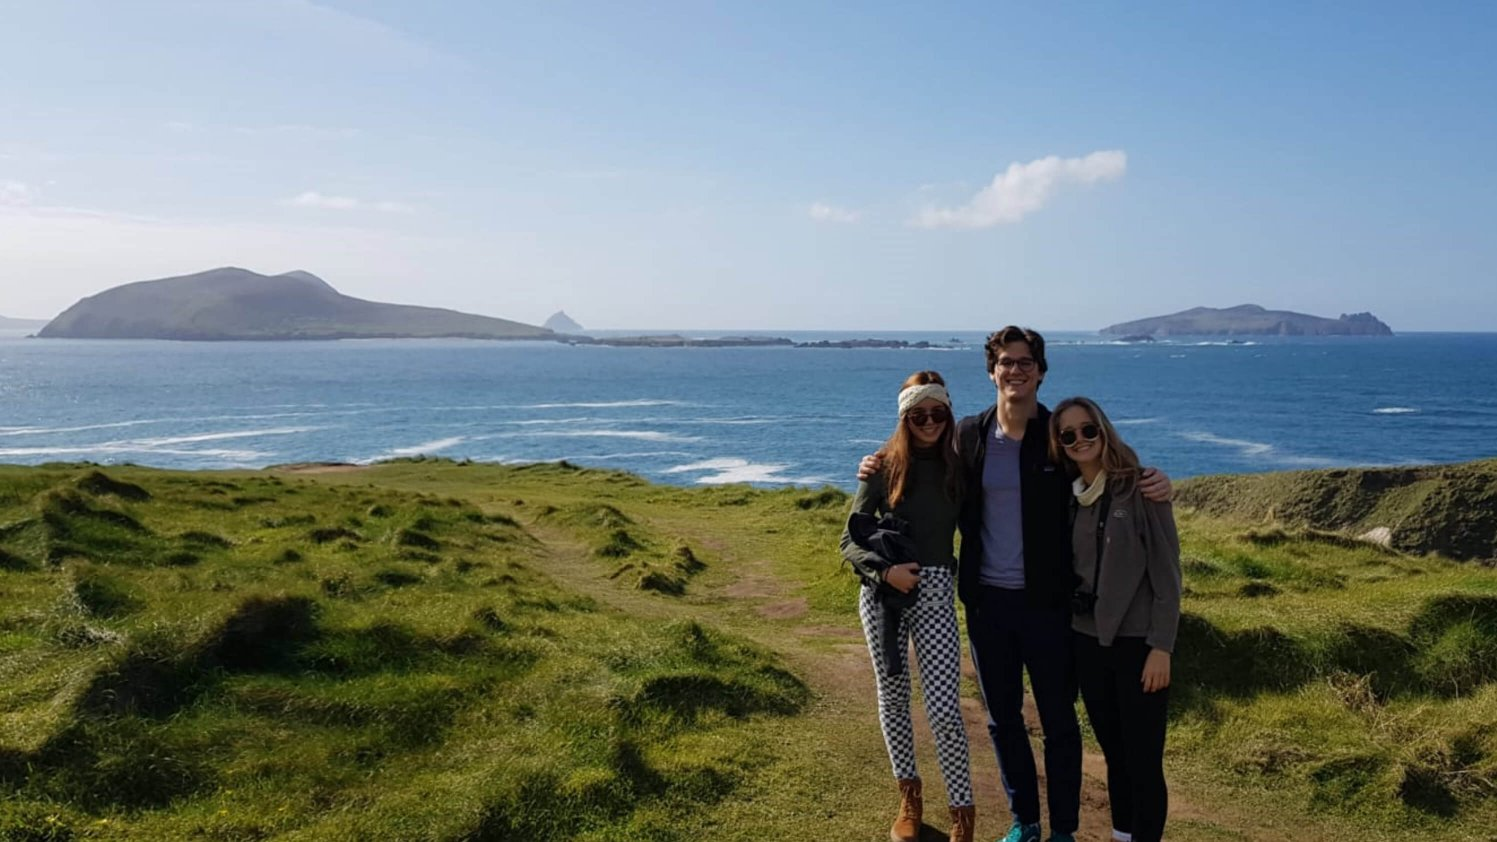 Vagabond guests pose with the Blasket Islands in the background